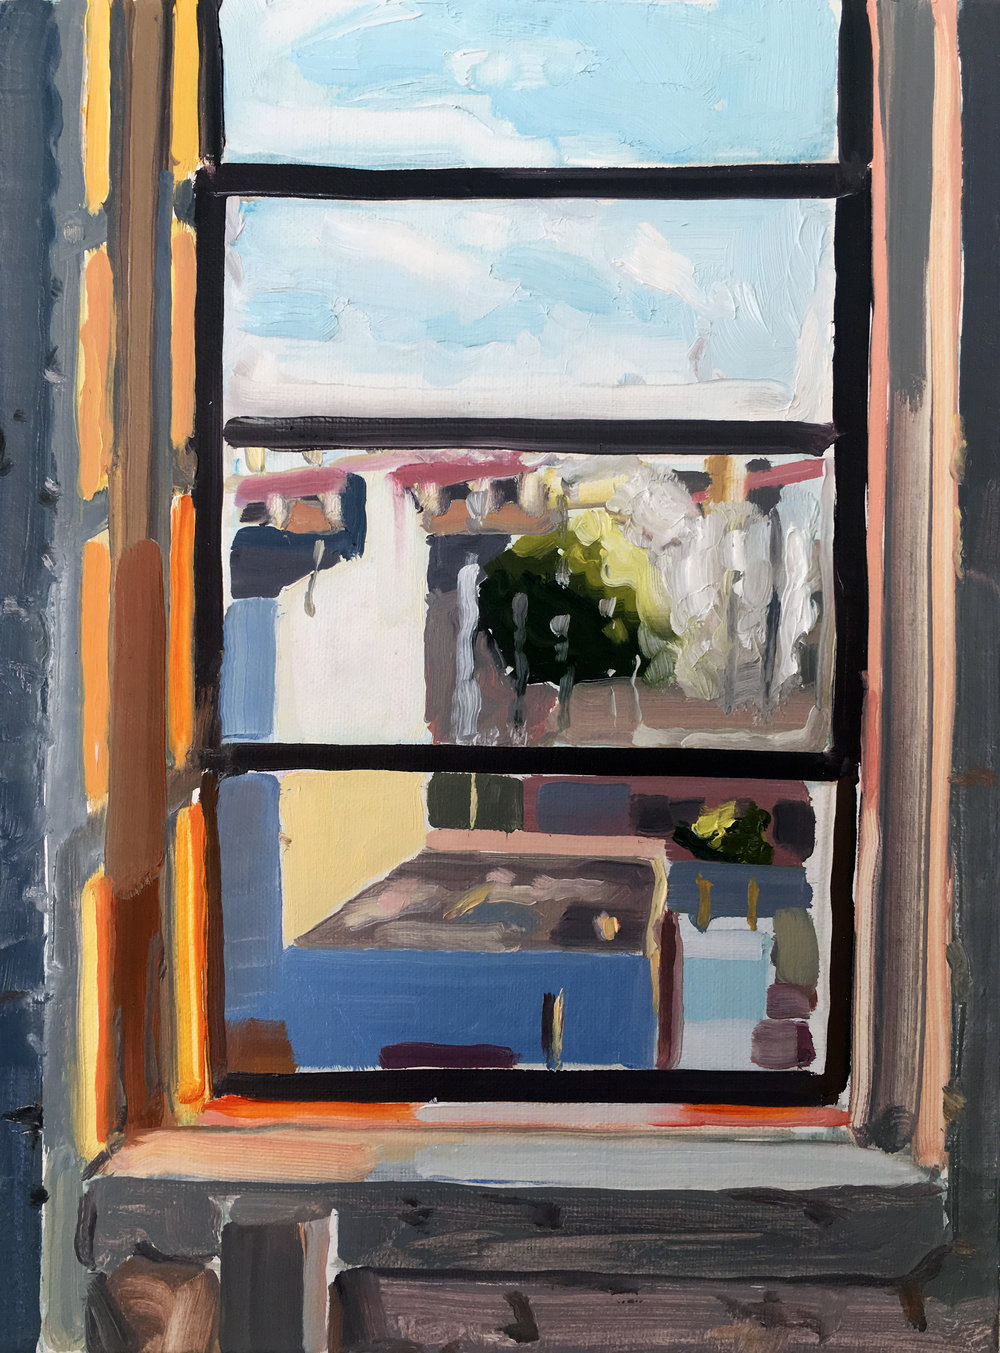 Day Window (8/23), 2017, oil on linen, 12 x 9 inches